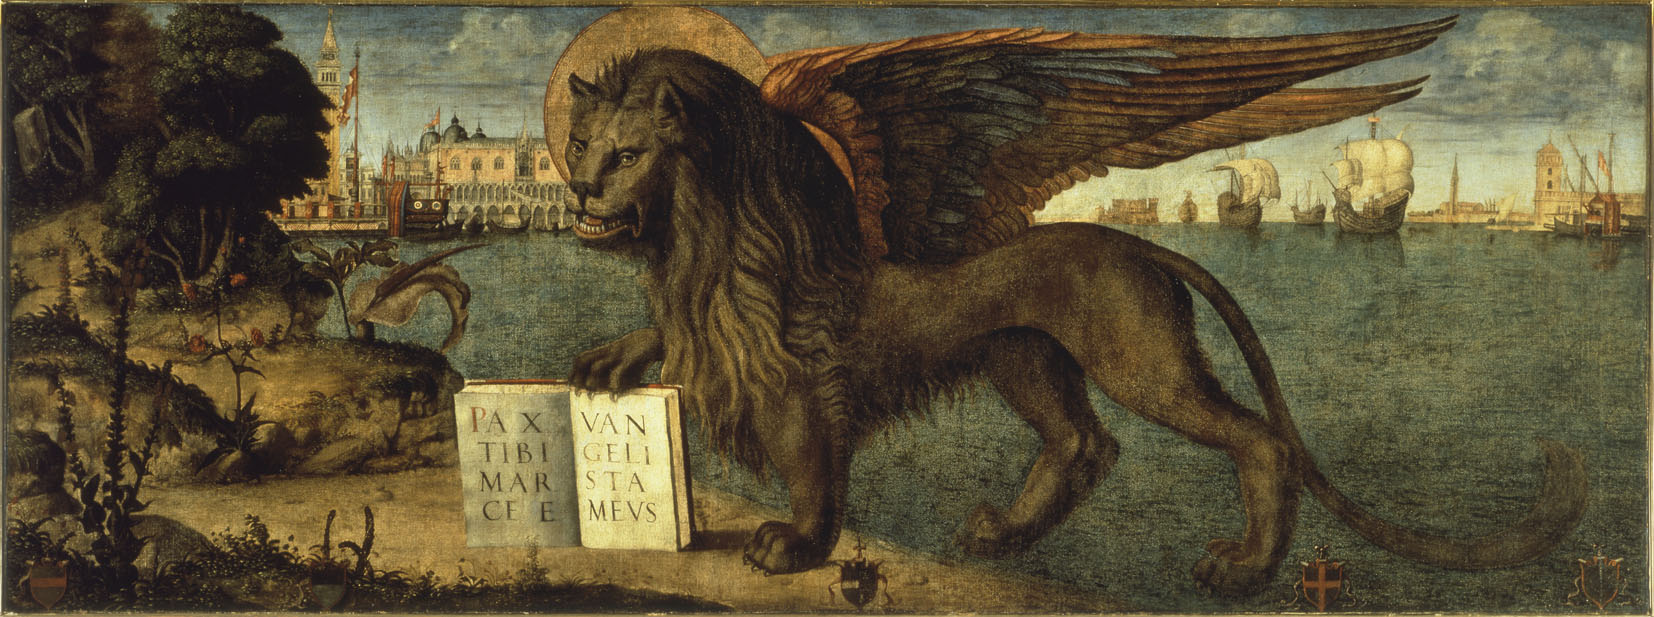 'The Lion of St. Mark' by Vittore Carpaccio (1516), The Doge's Palace. | © FONDAZIONE MUSEI CIVICI DI VENEZIA